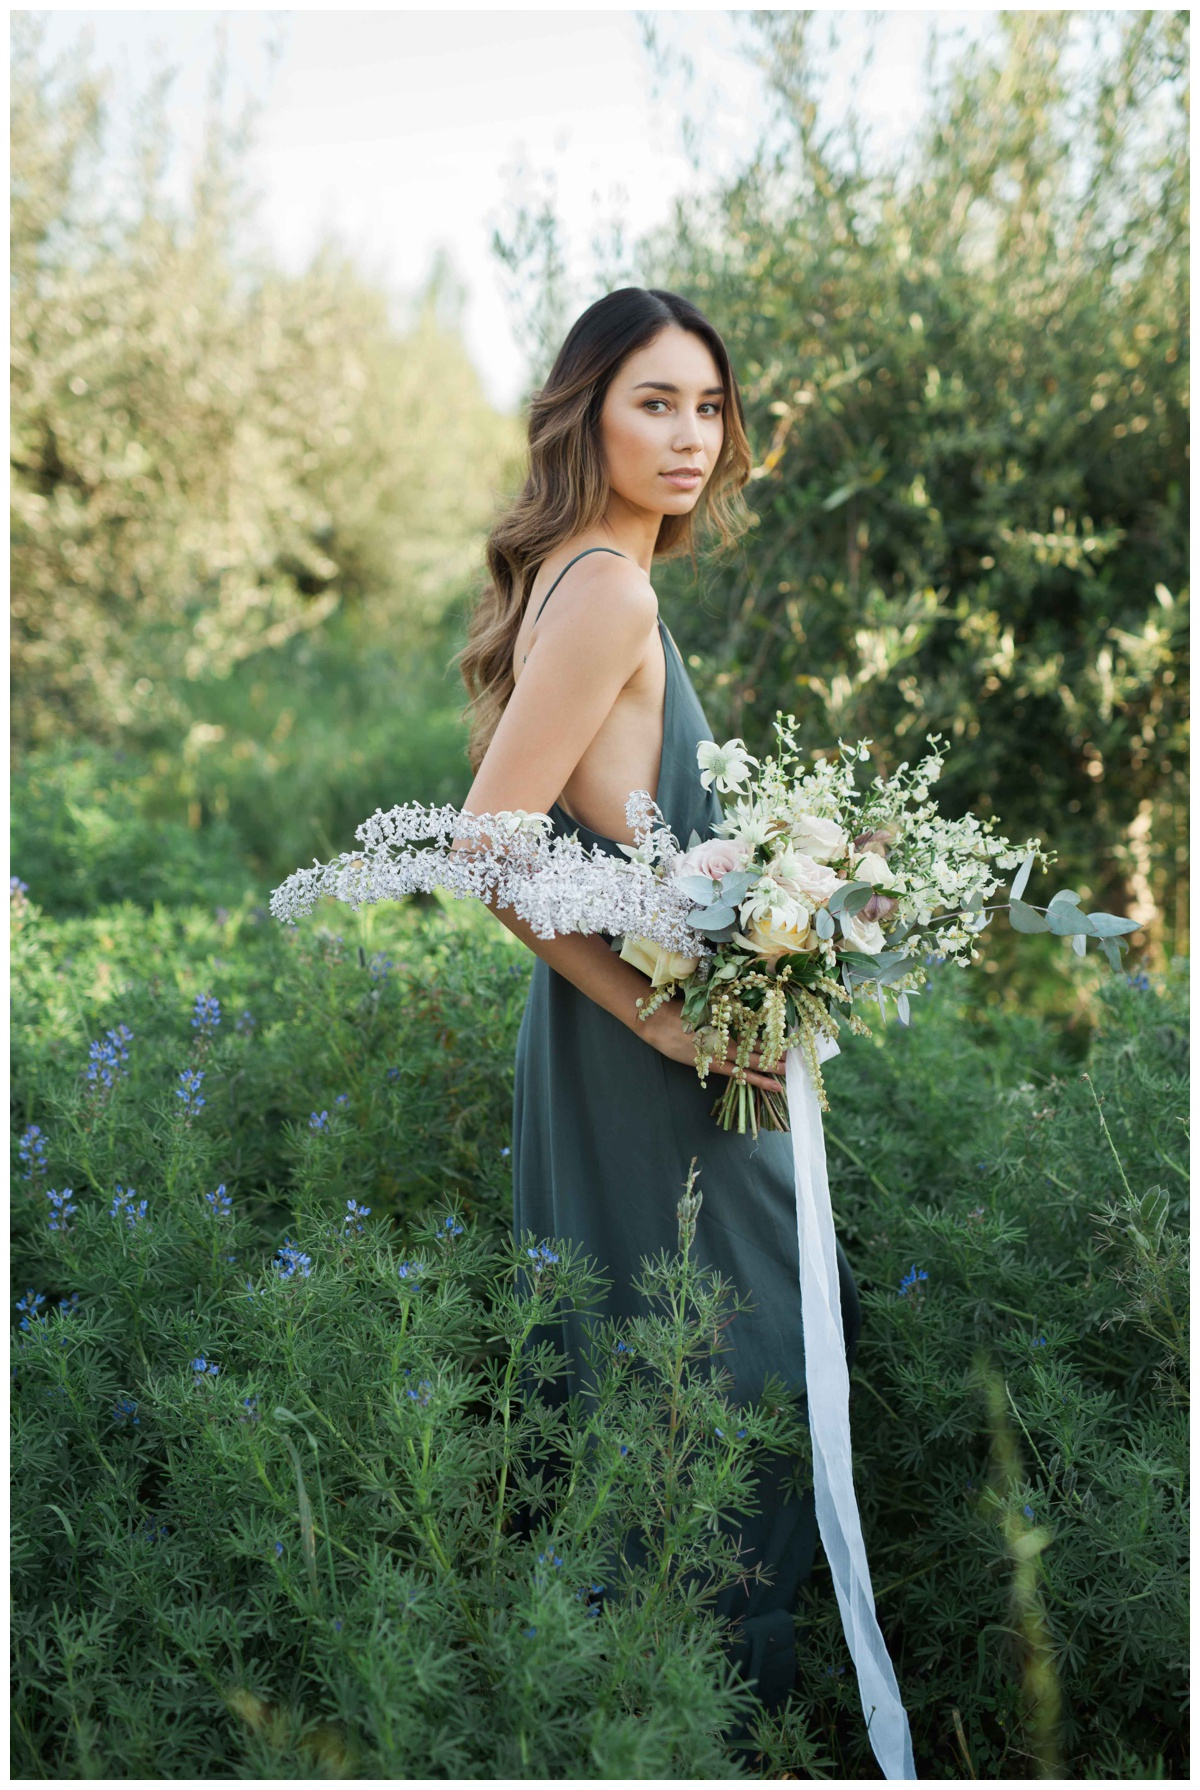 CA Floral Couture & Chrystal Hair - Tessa Kit Photography - Perth Wedding & Engagement Photographer - October 01, 2017 - IMG_8068.jpg